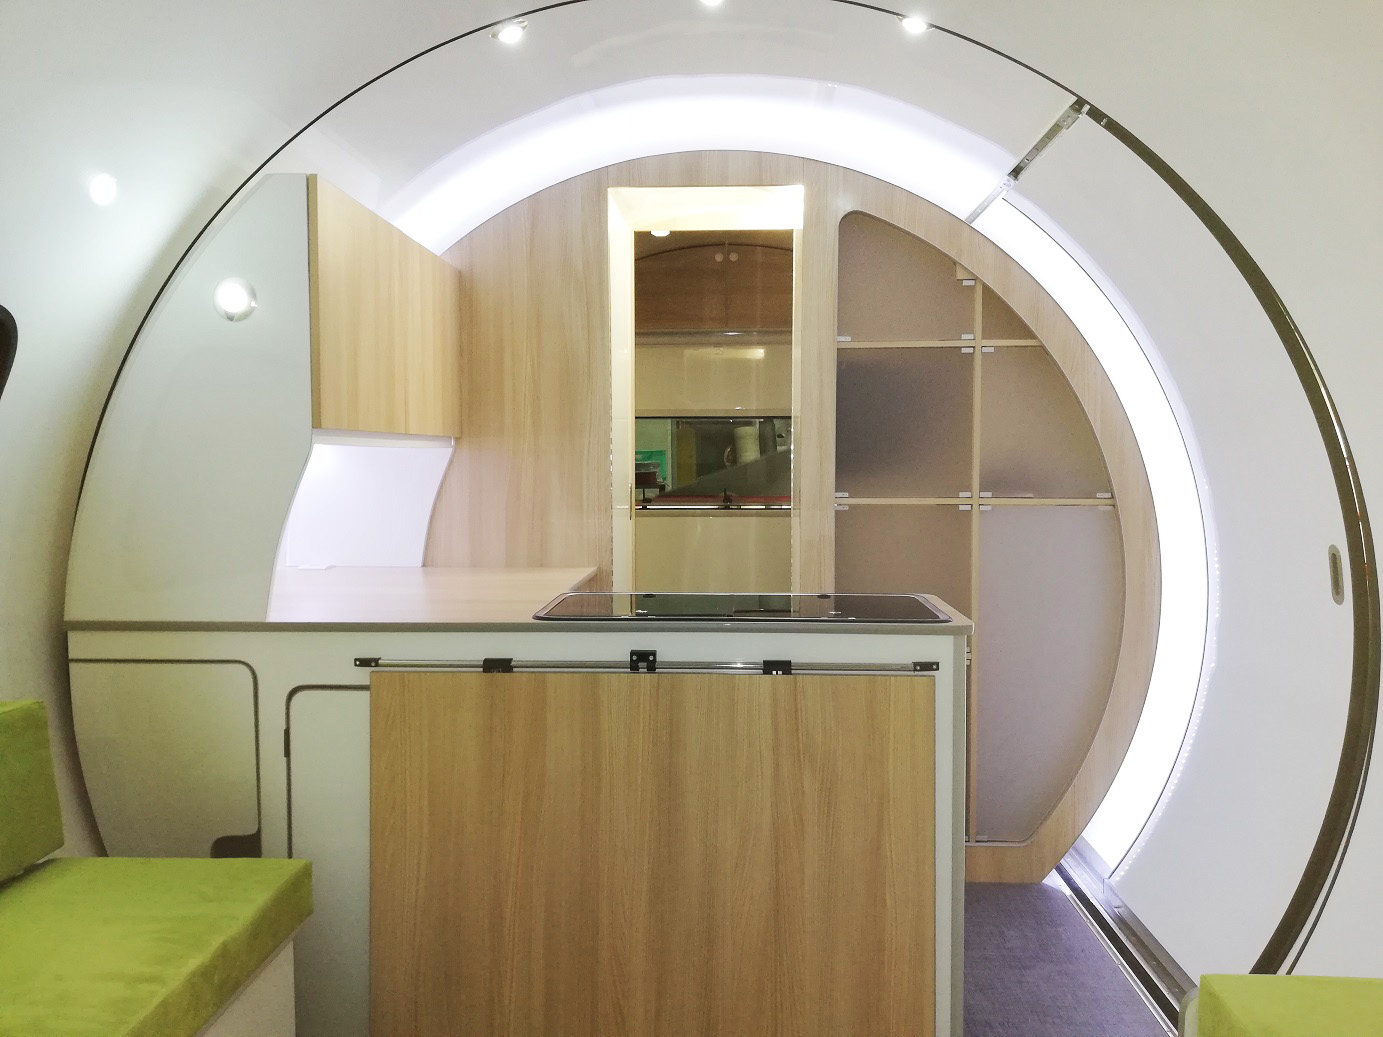 3X kitchen - white interior, wood cupboards, clear acrylic storage pods,green sofa